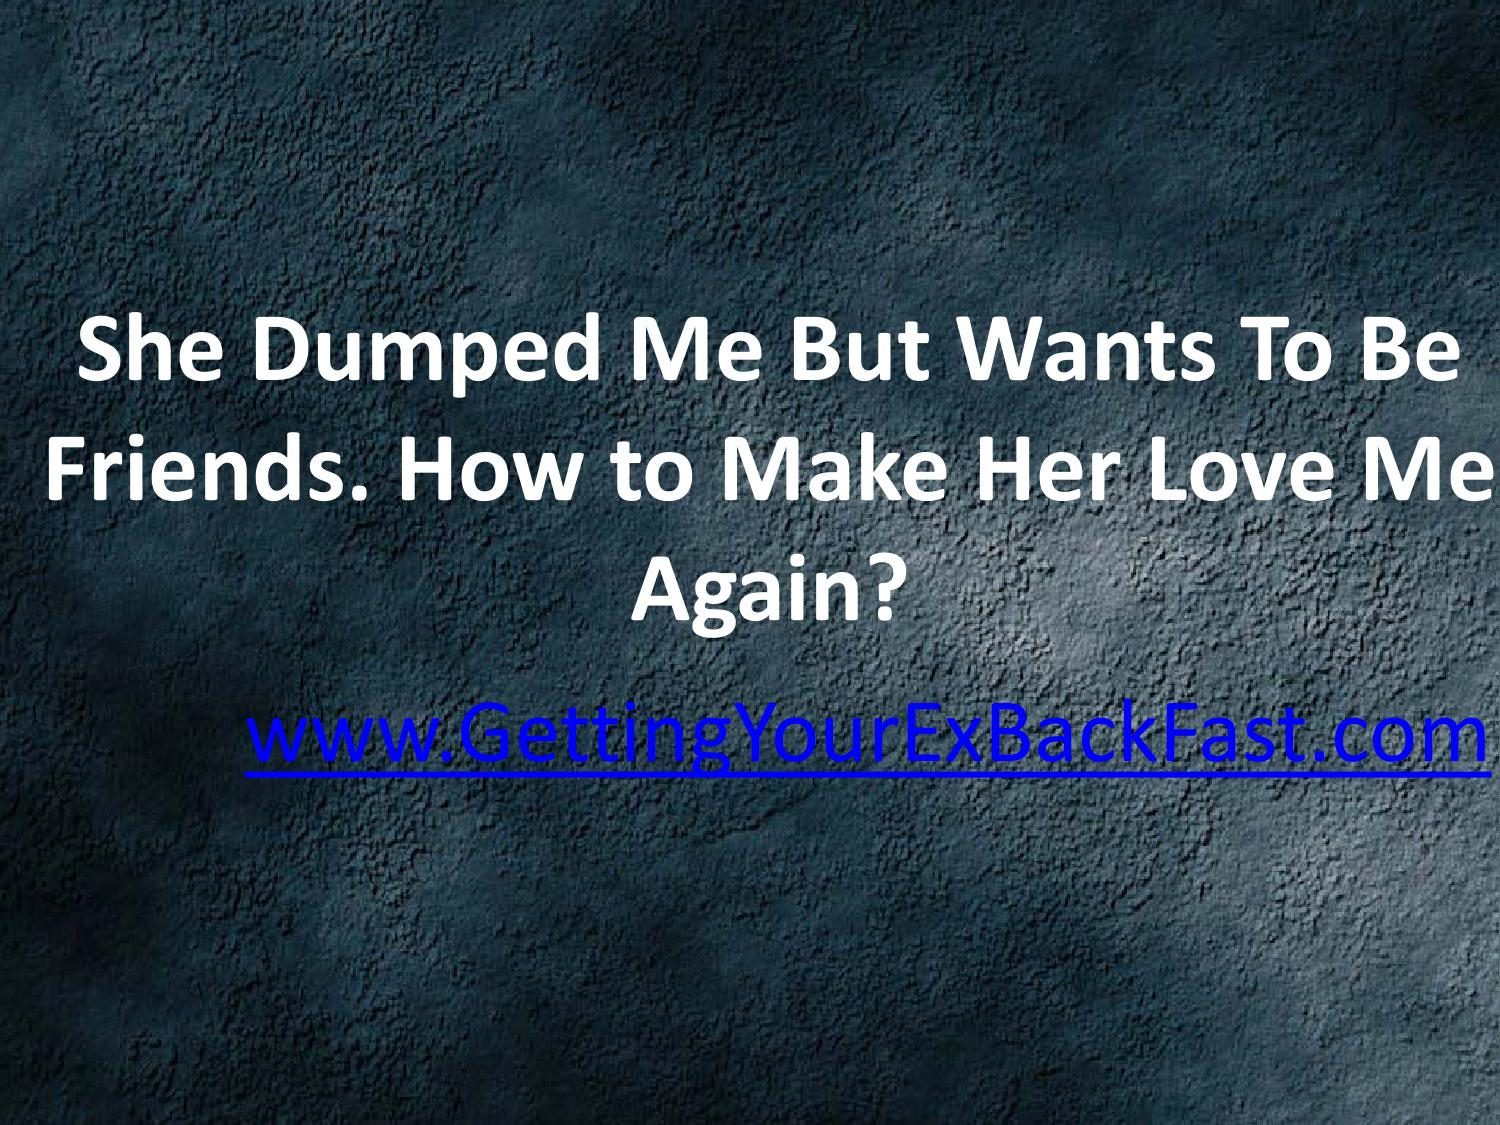 She dumped me by text